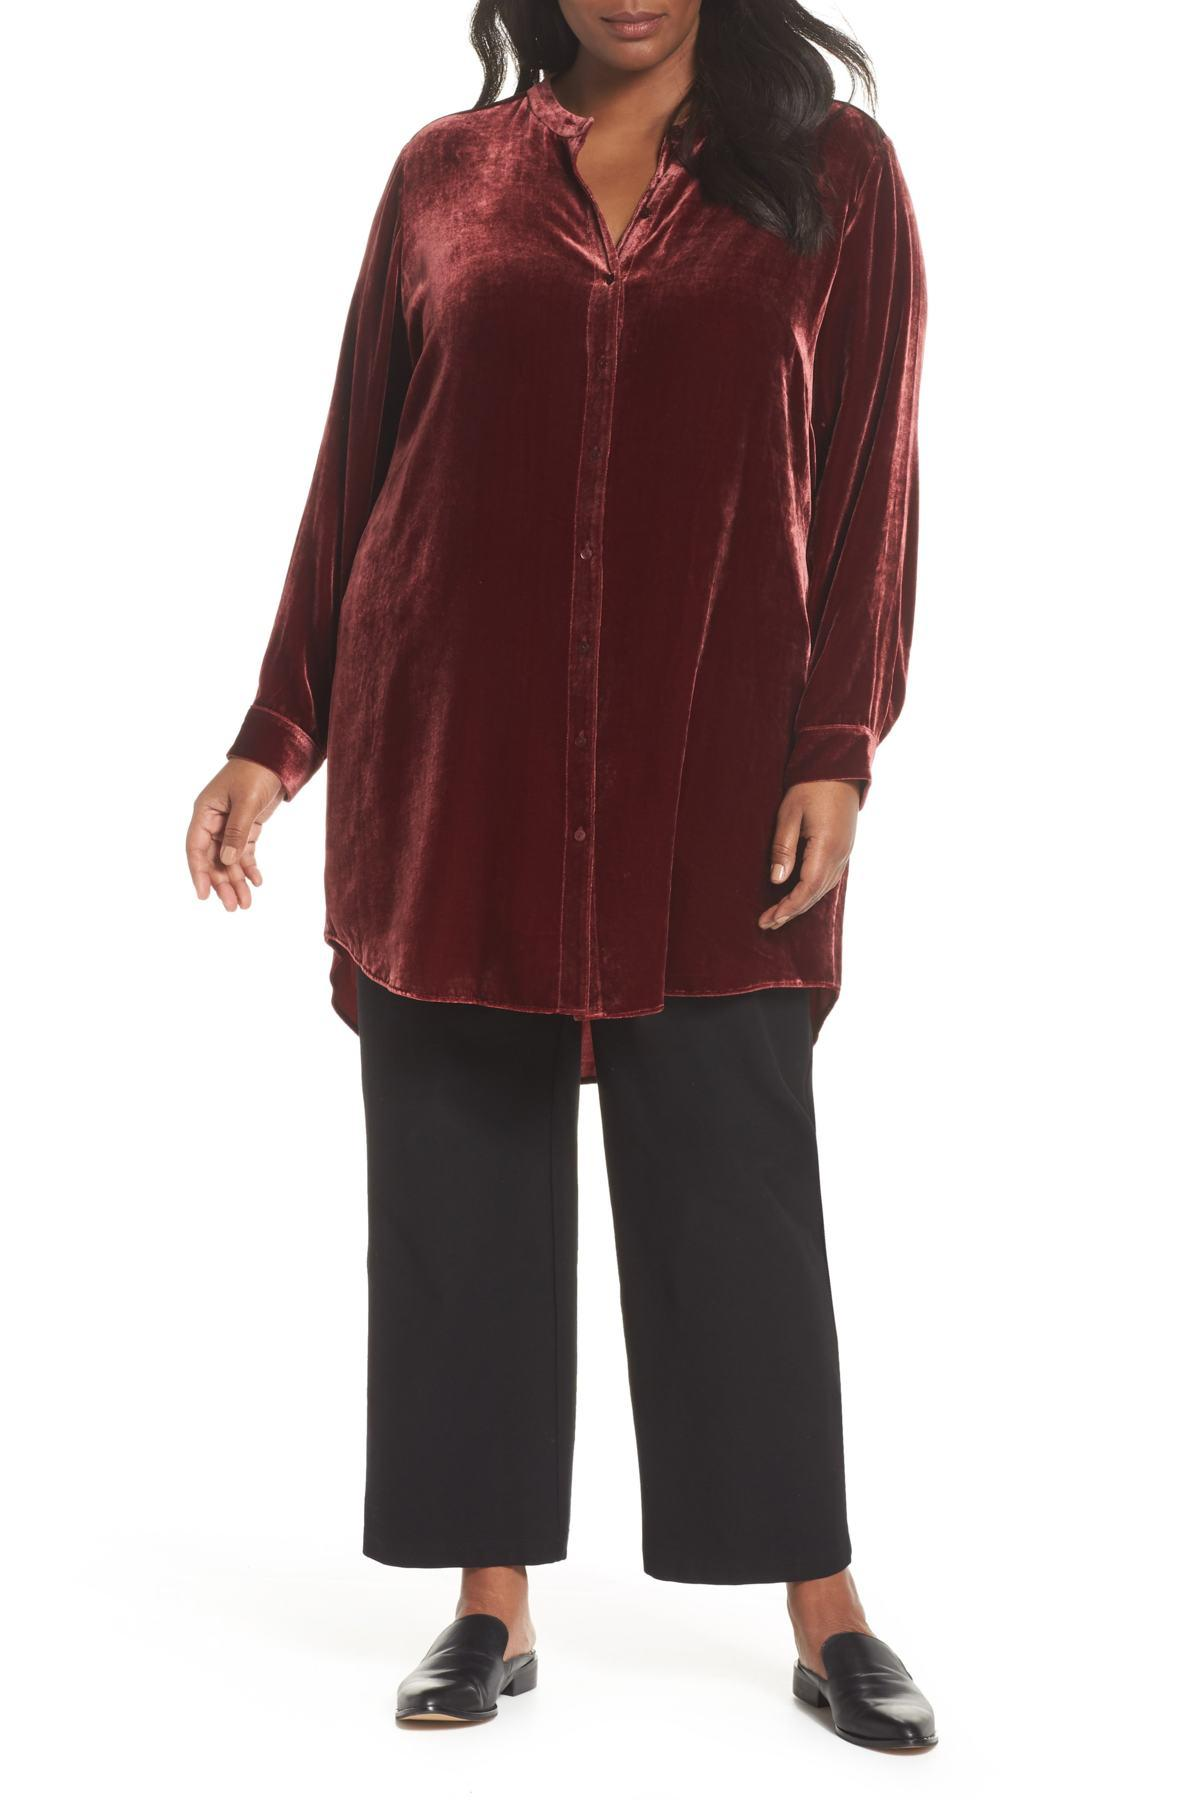 49140e5f33aad Lyst - Eileen Fisher Long Velvet Shirt (plus Size) in Red - Save ...